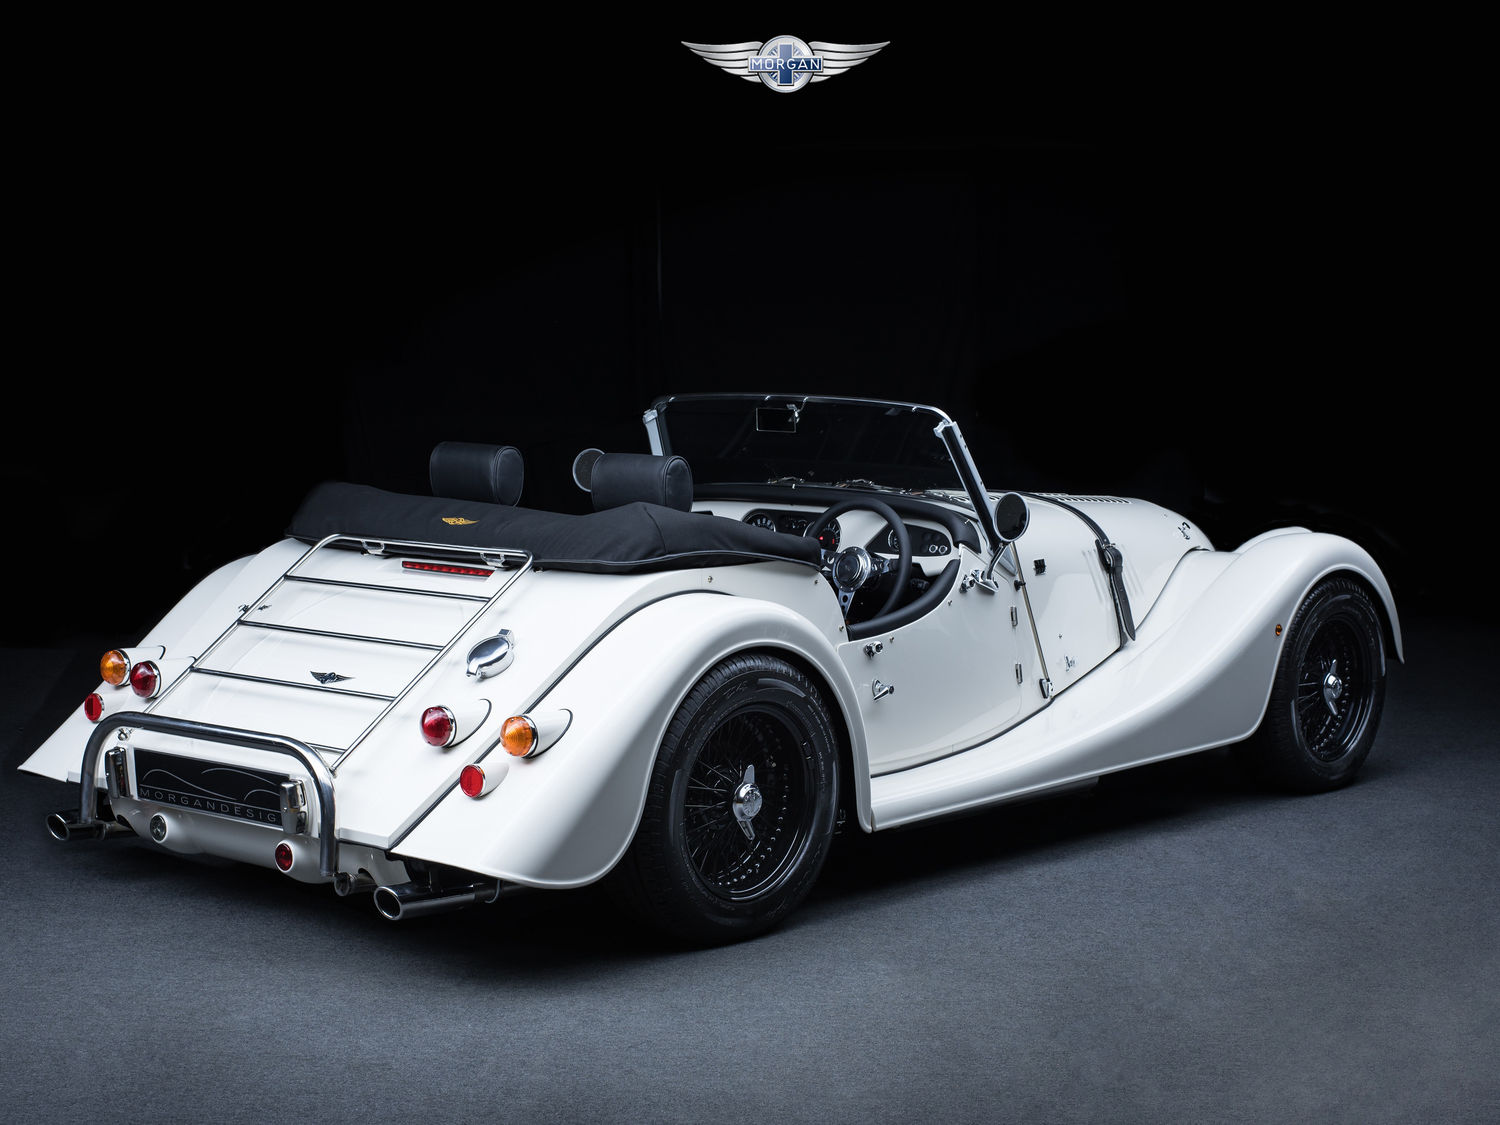 Morgan Roadster 3.7 Litre